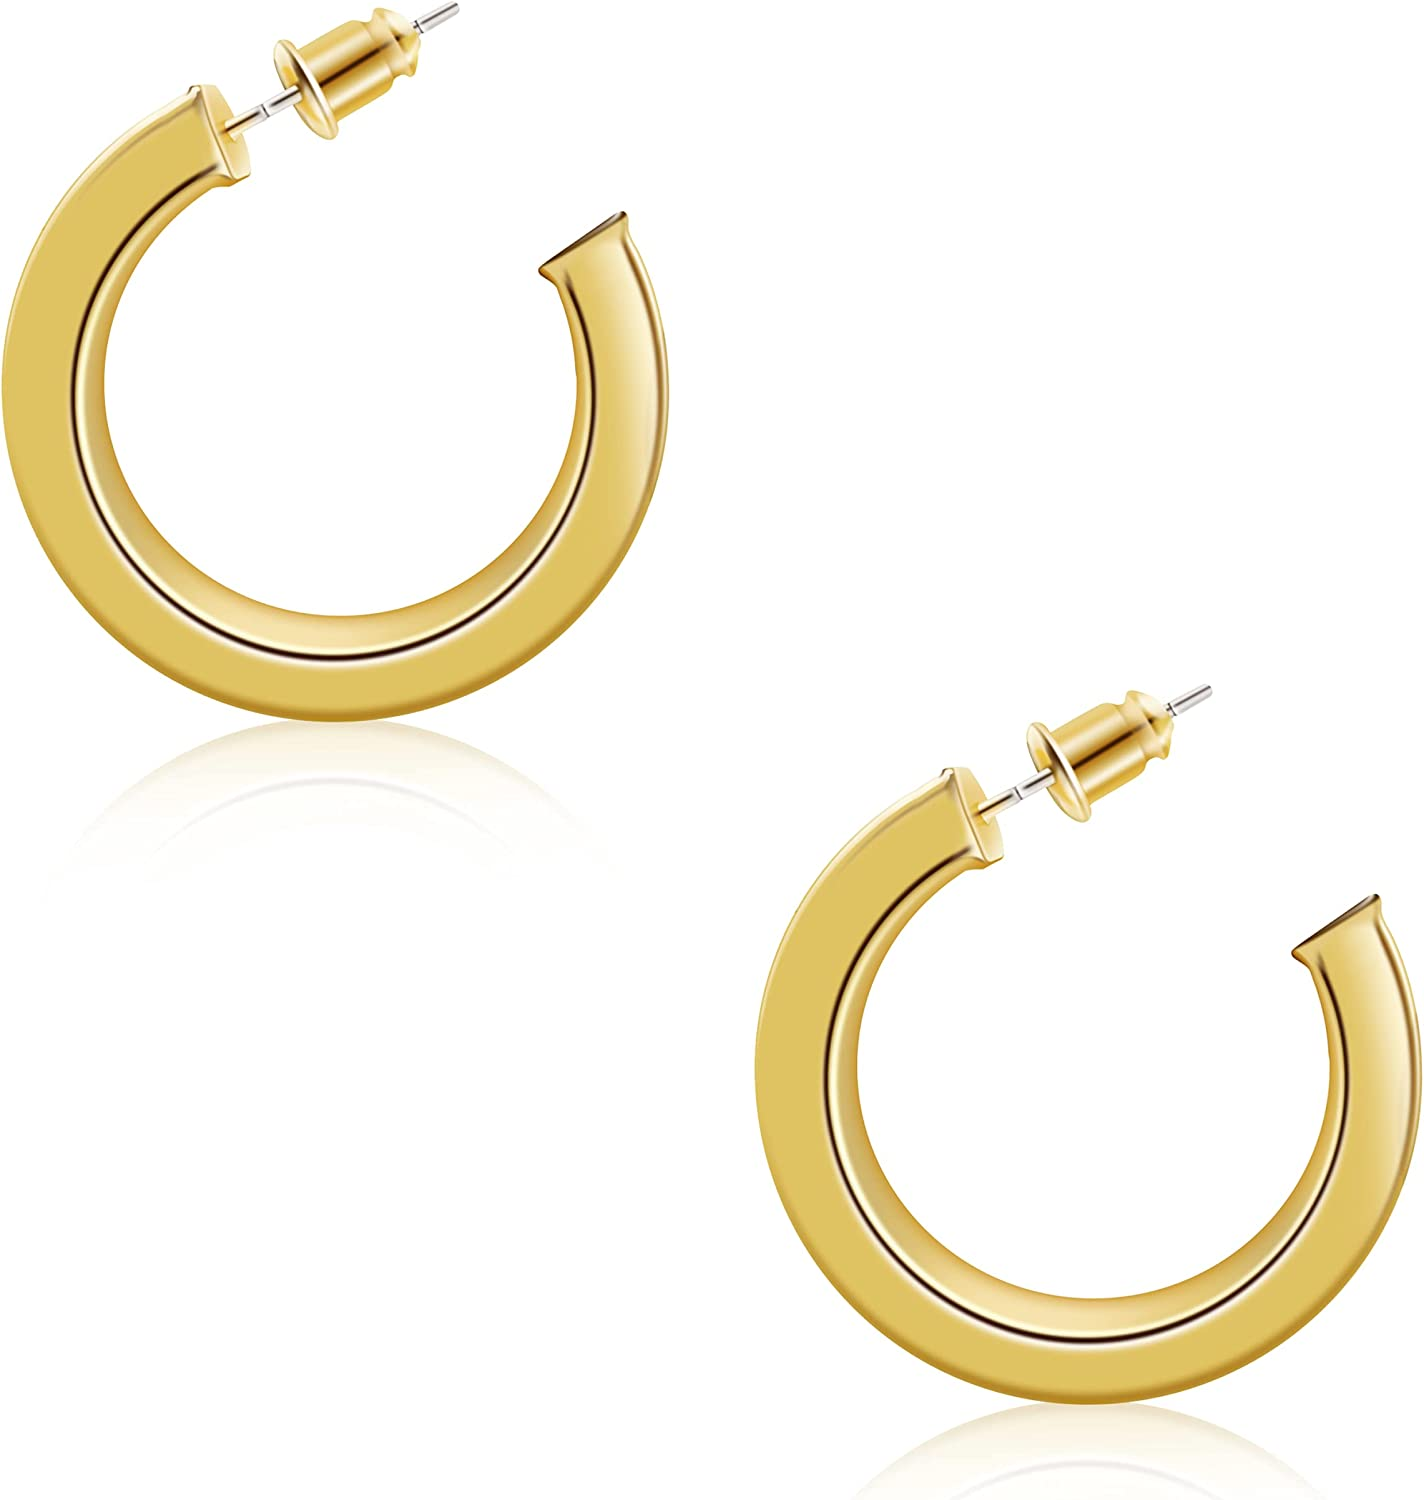 Urboon Thick Chunky Gold Silver Hoop 4 Earrings Super beauty product restock quality top excellence for Women 30mm